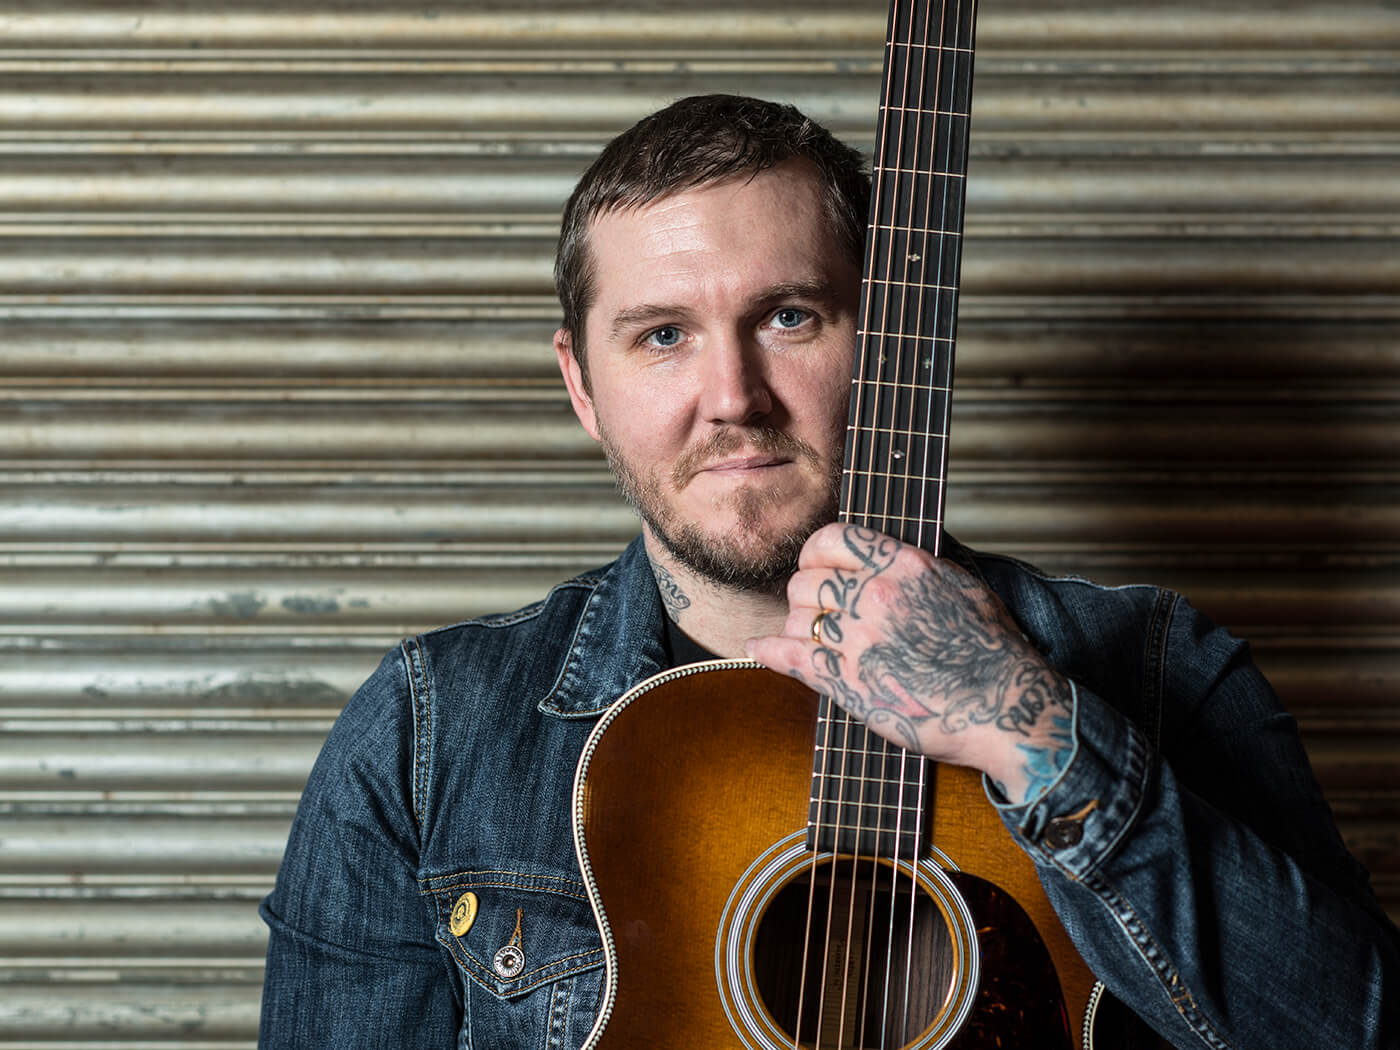 """""""I wanted to be able to do things I couldn't do"""": Brian Fallon on taking guitar lessons again"""